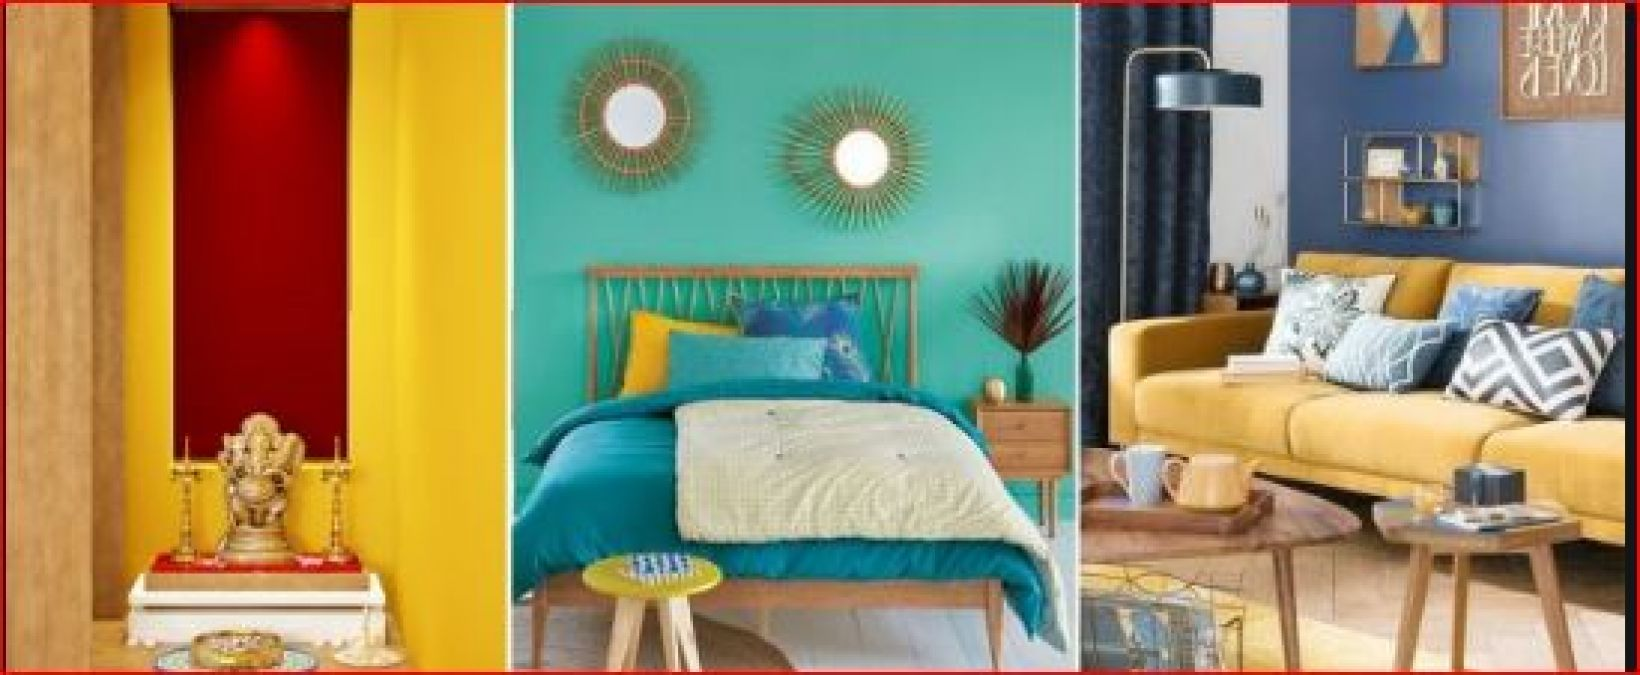 Important Vastu Tips for a Happy, Positive and Ideal Home